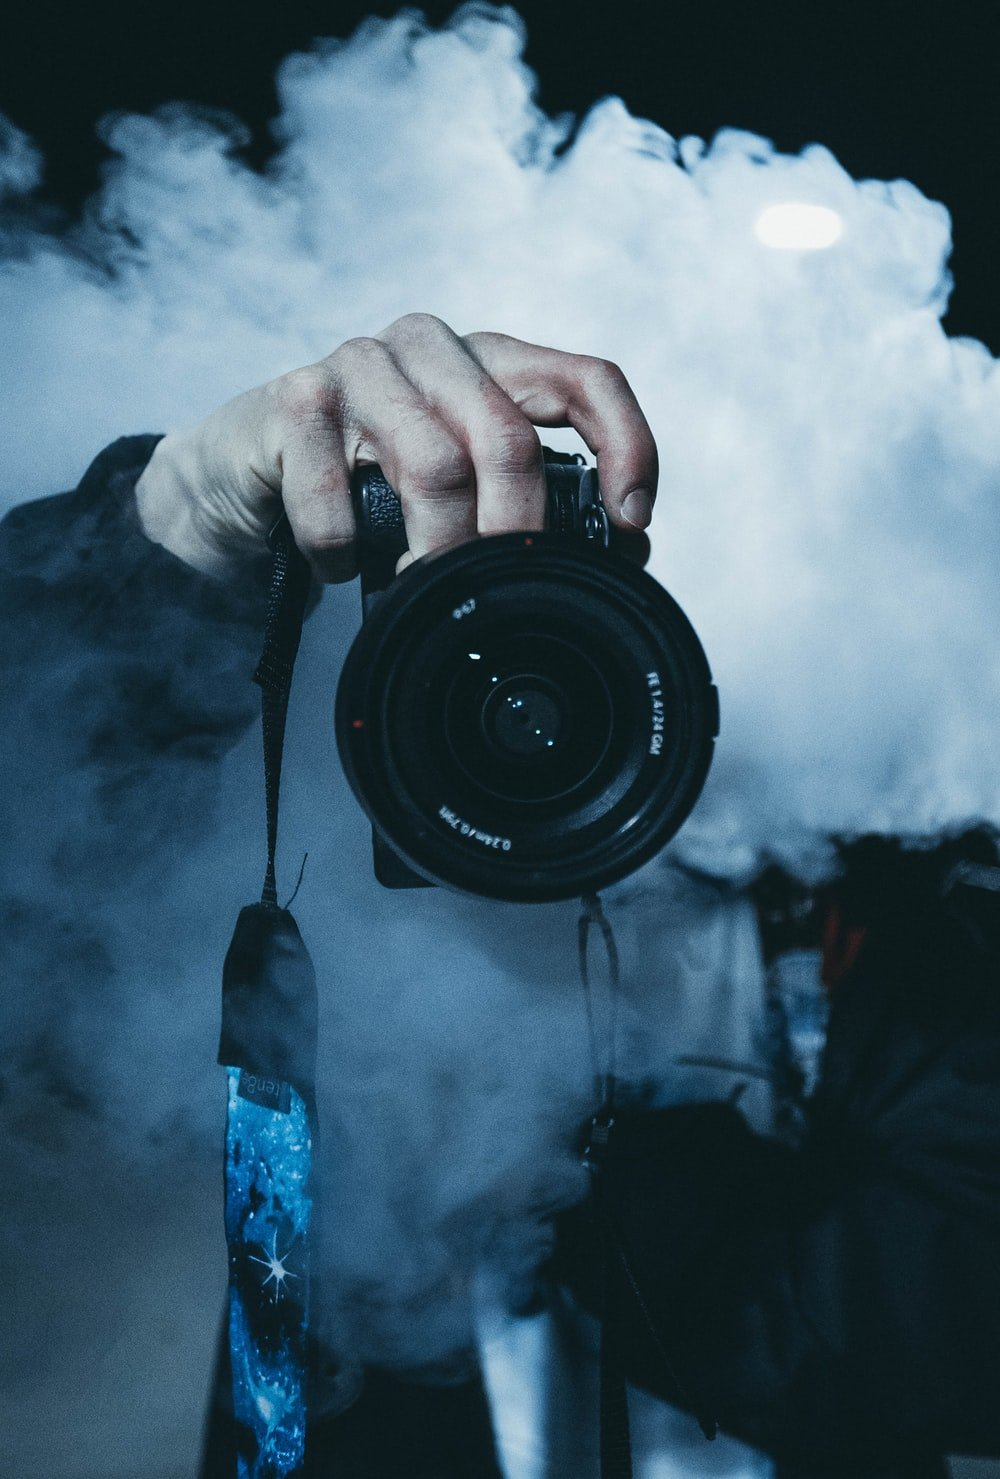 500 Photographer Pictures [HD] Download Images on Unsplash 1000x1479